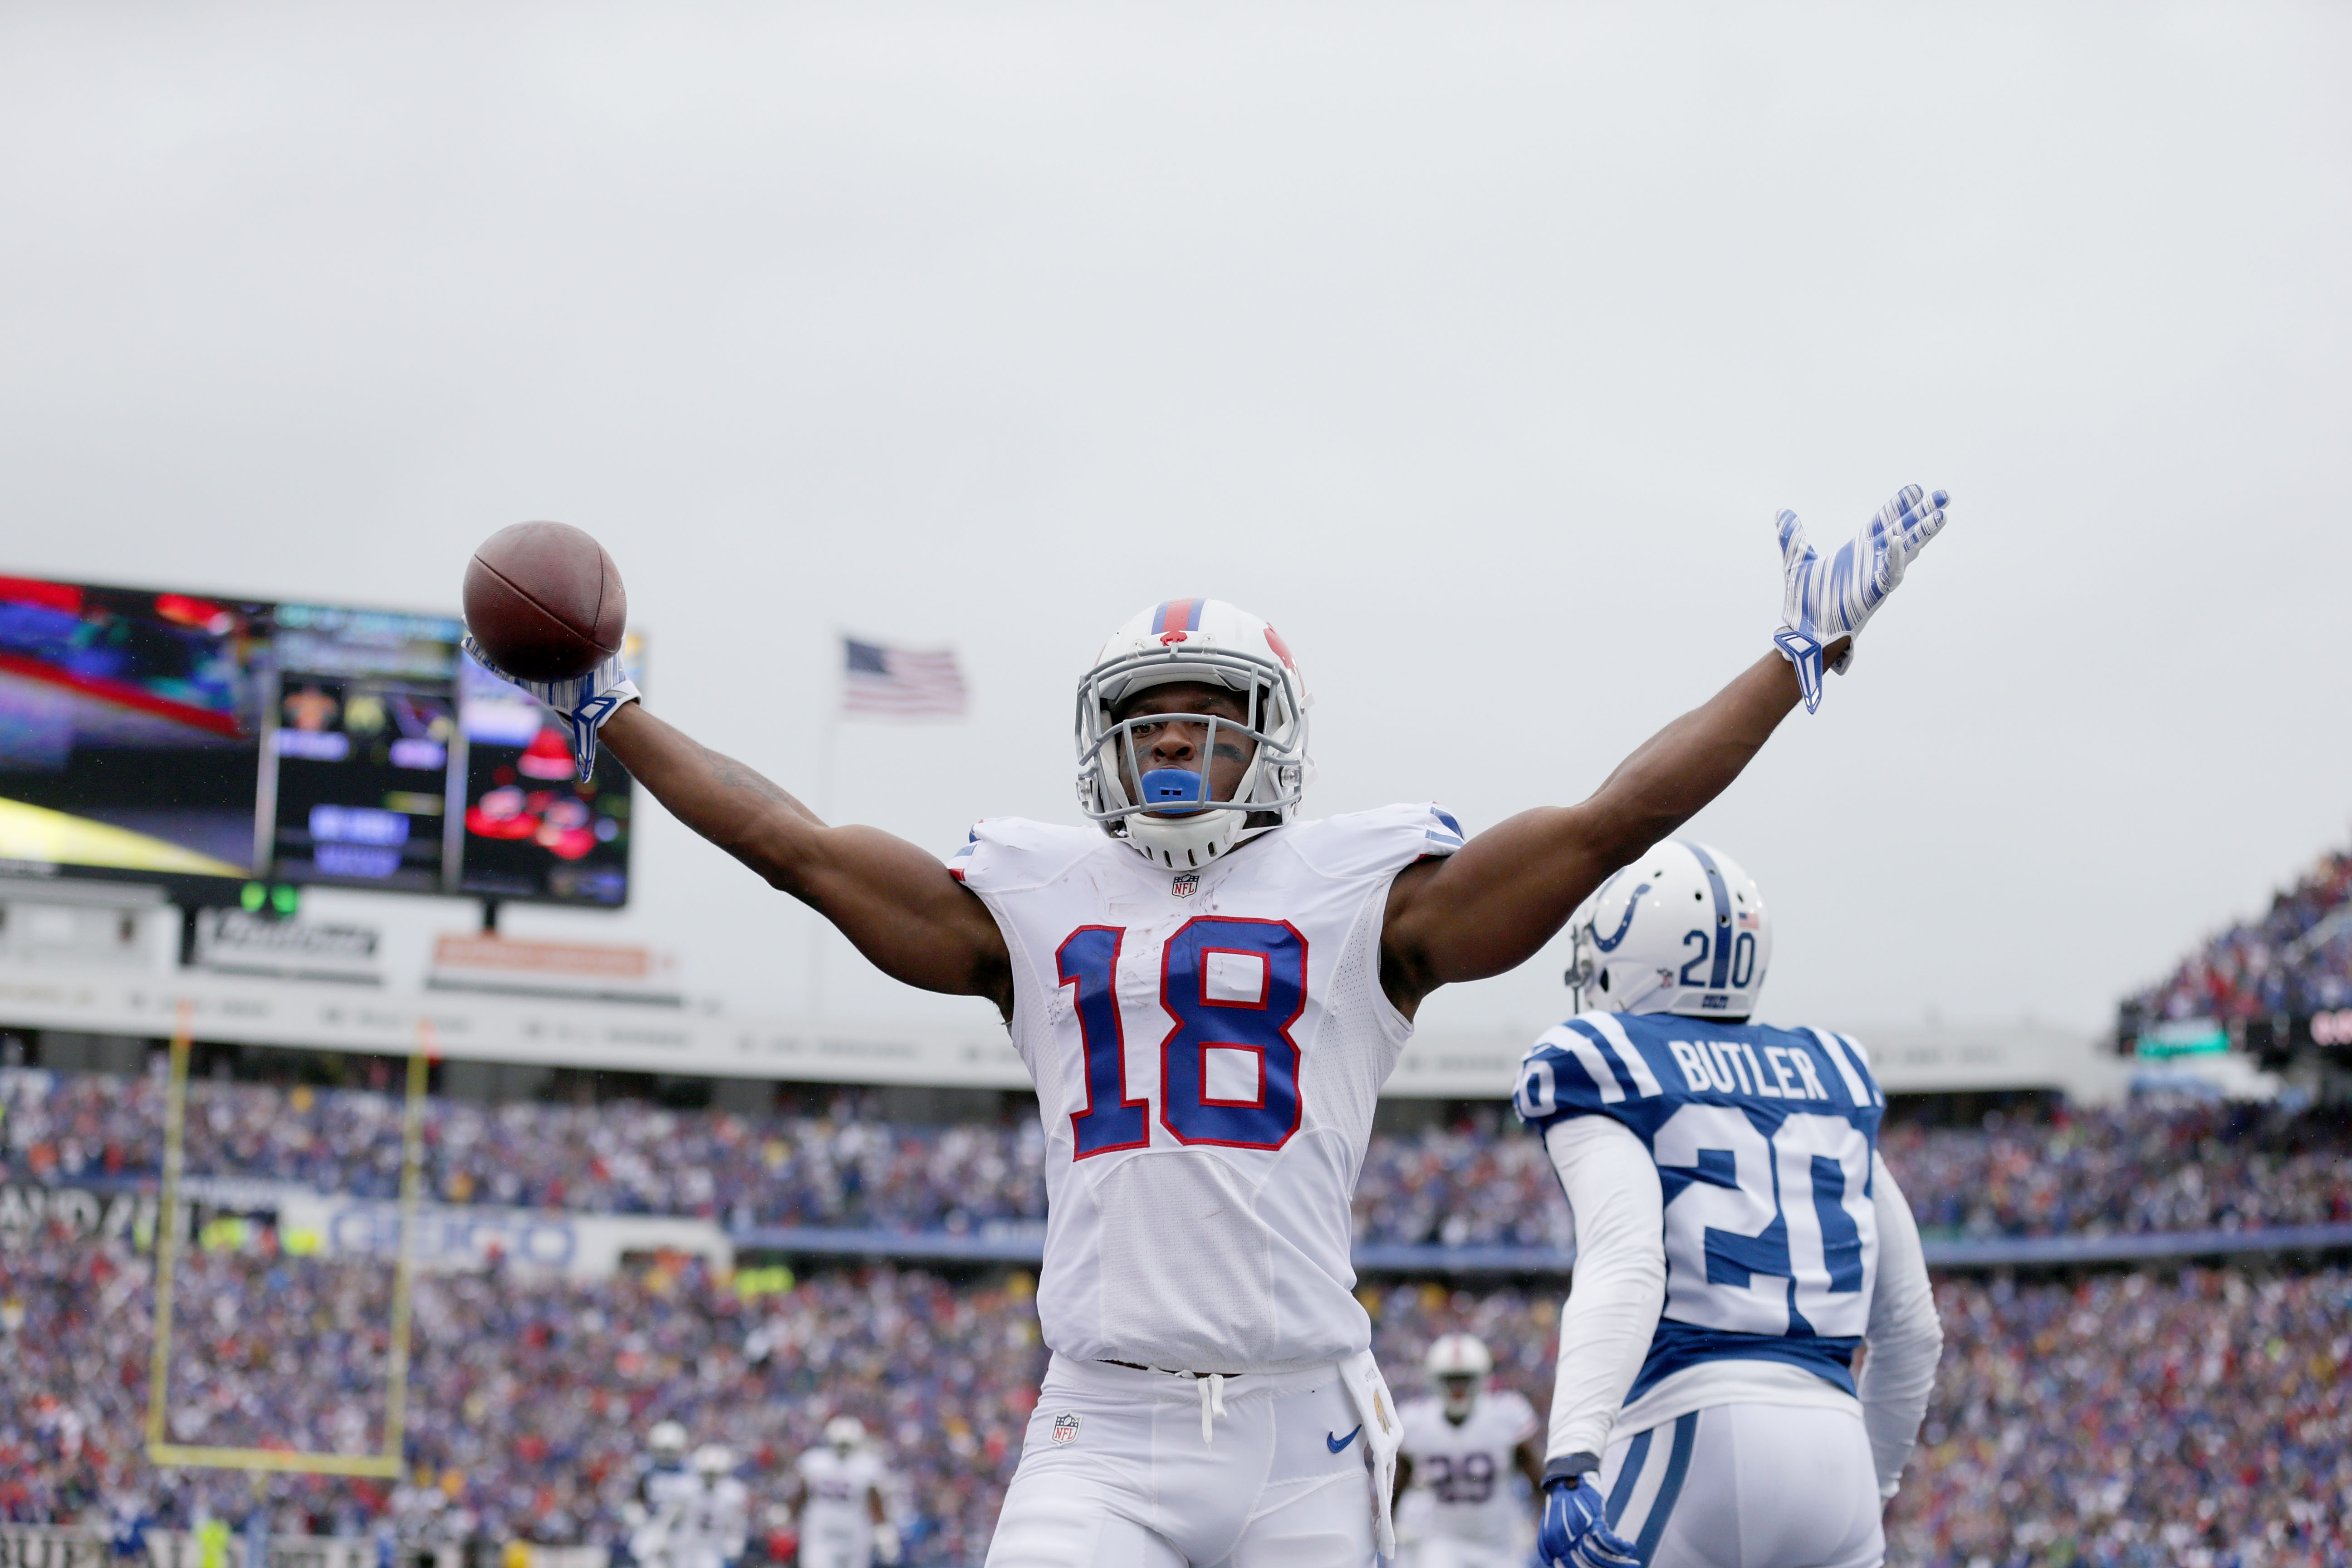 ORCHARD PARK, NY - SEPTEMBER 13:  Percy Harvin #18 of the Buffalo Bills celebrates his touchdown against the Indianapolis Colts during the first half at Ralph Wilson Stadium on September 13, 2015 in Orchard Park, New York.  (Photo by Brett Carlsen/Getty Images)